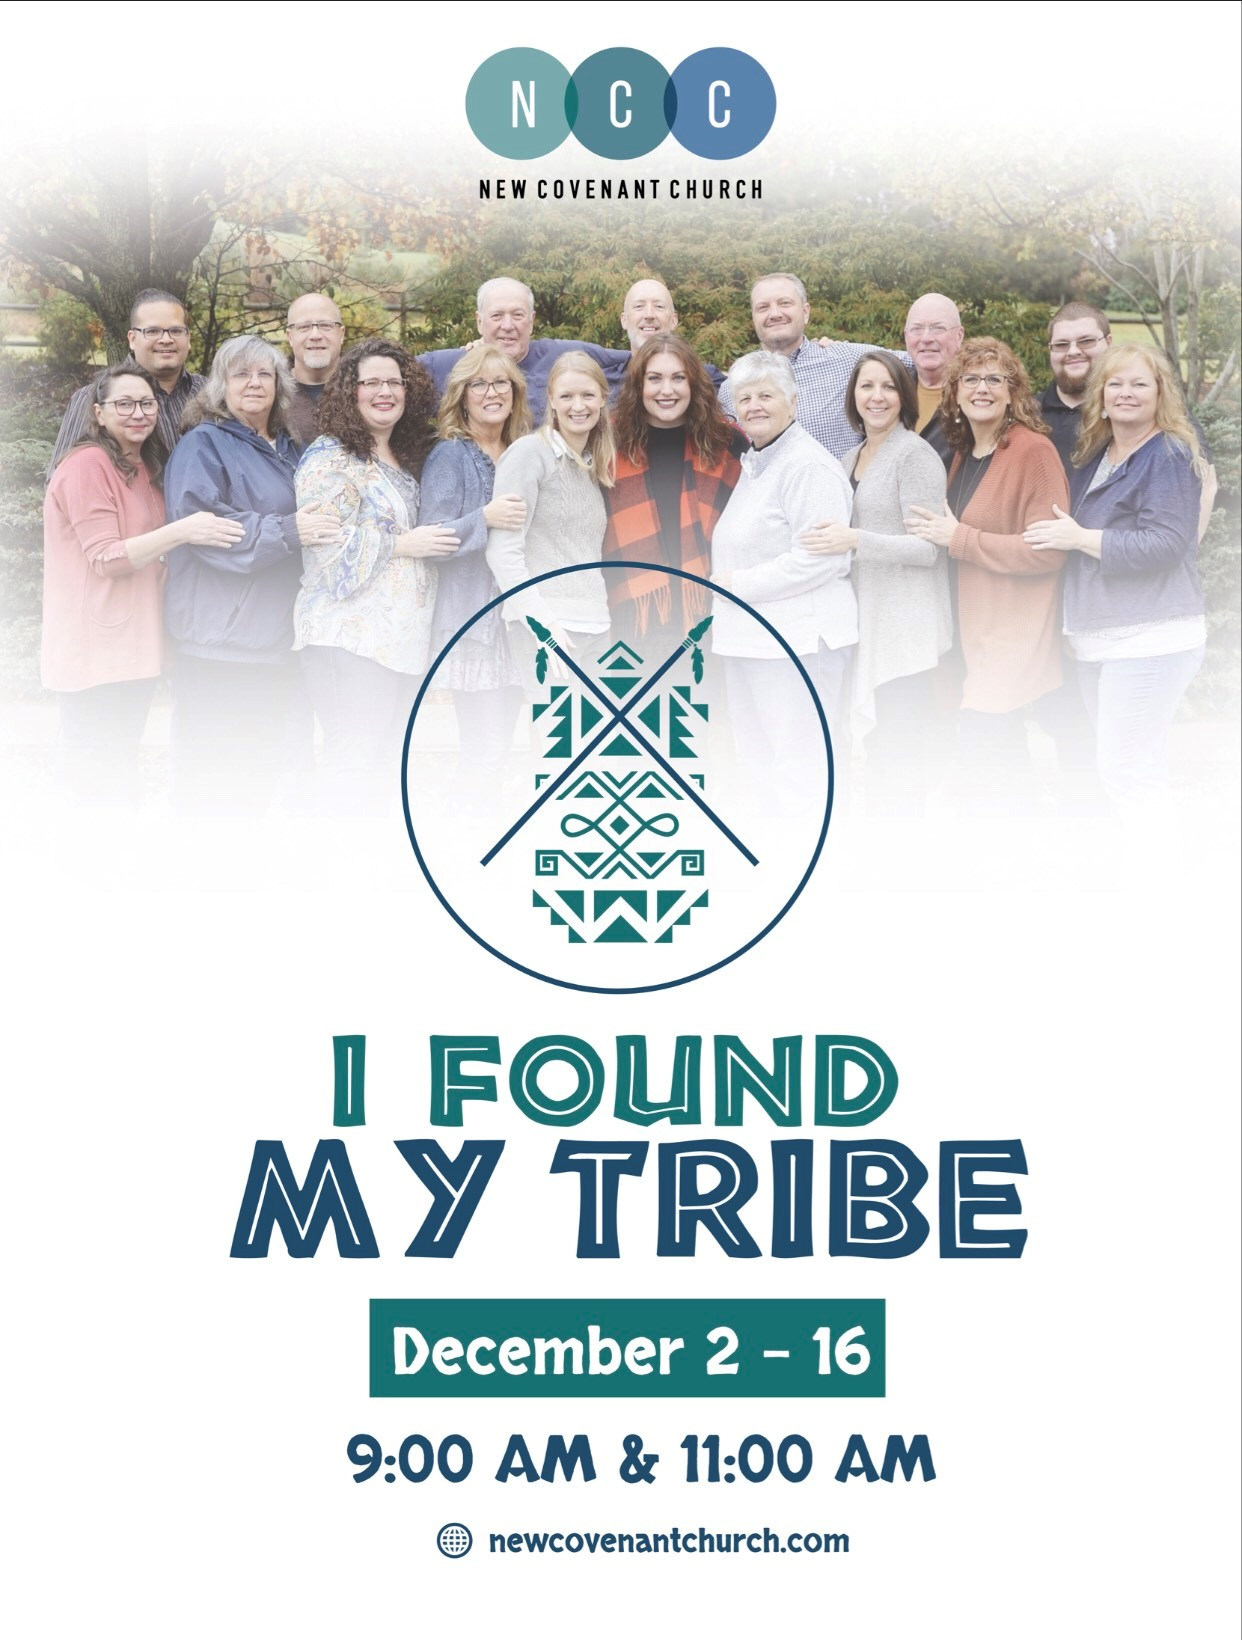 I Found My Tribe - New Covenant Church, North Carolina